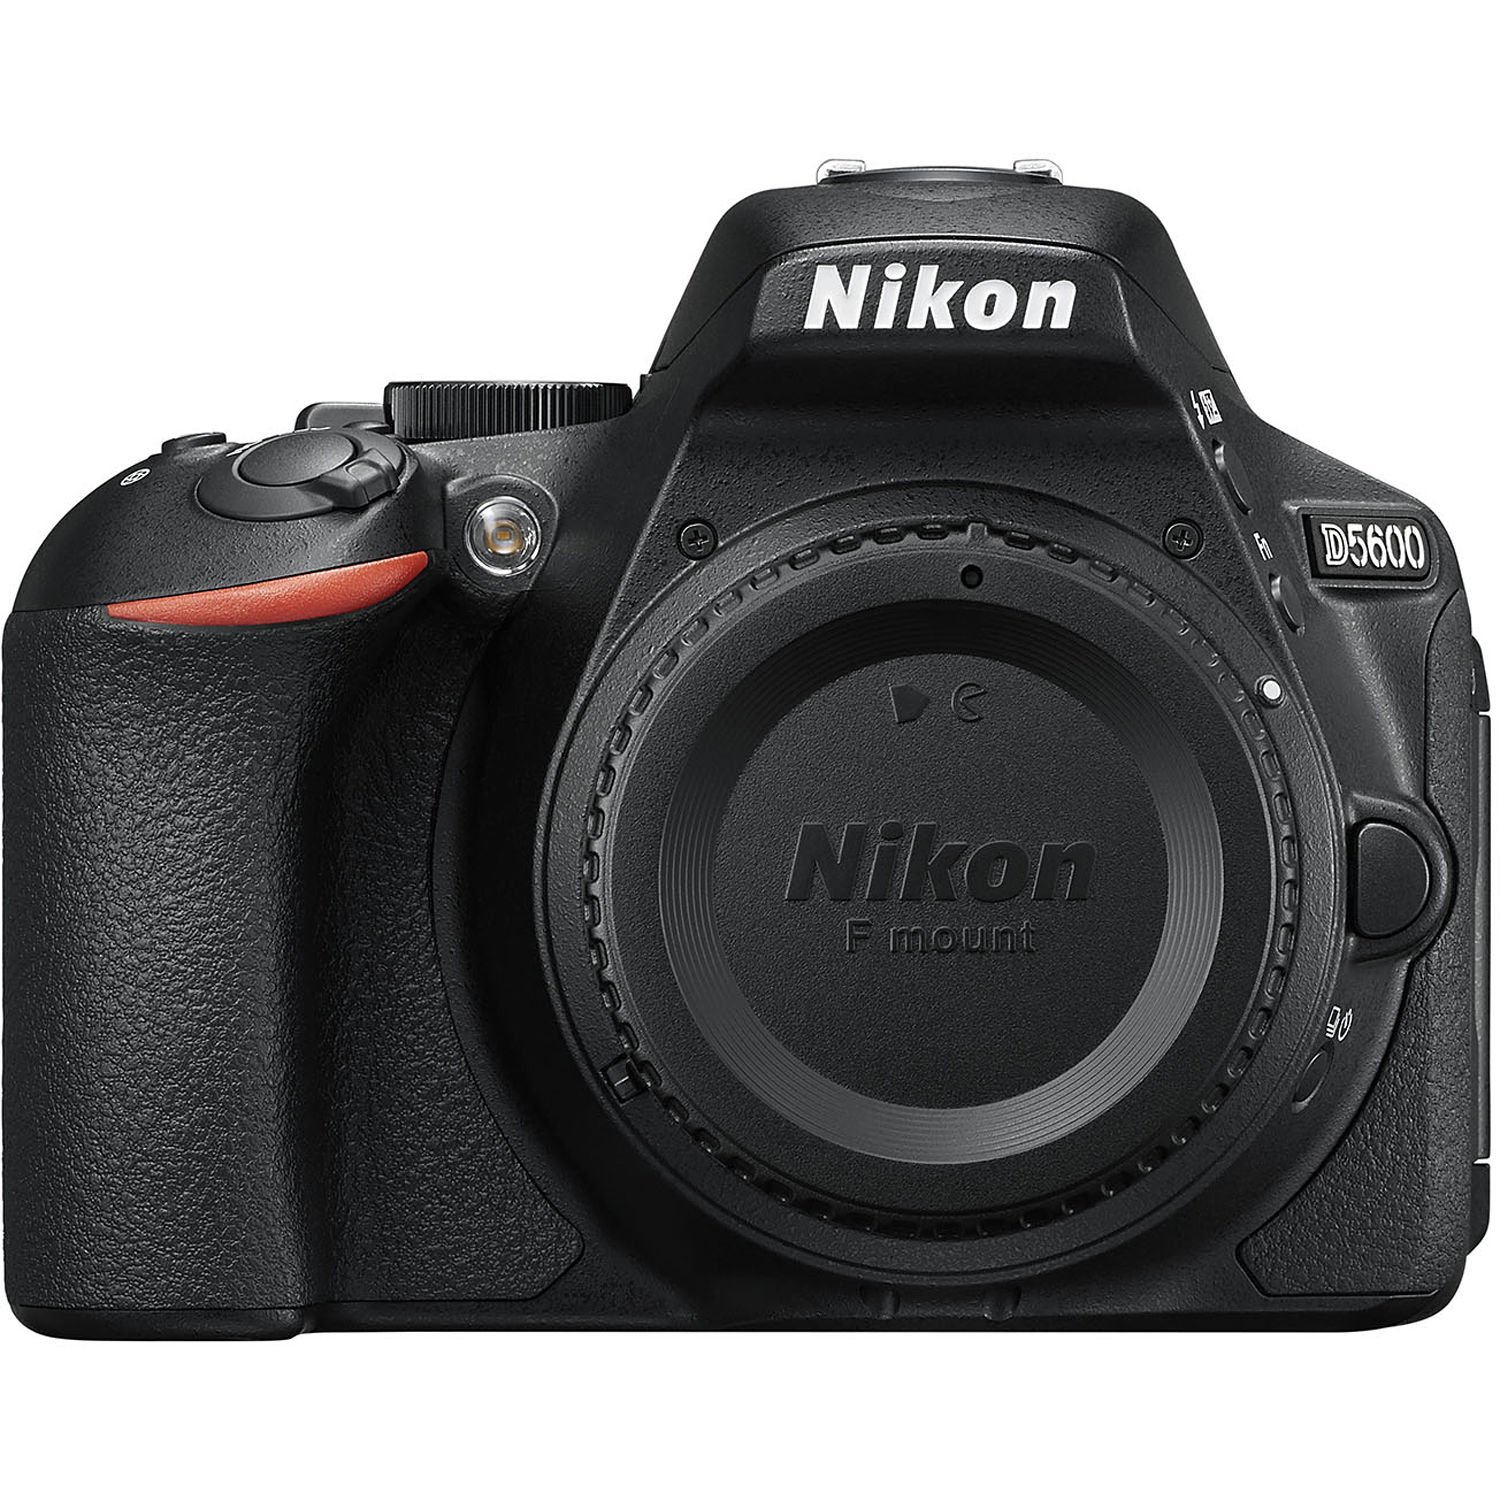 Nikon D5600 24.2MP DSLR Touchscreen Camera with SnapBridge Bluetooth and Wi-Fi with NFC (Body Only) by Nikon